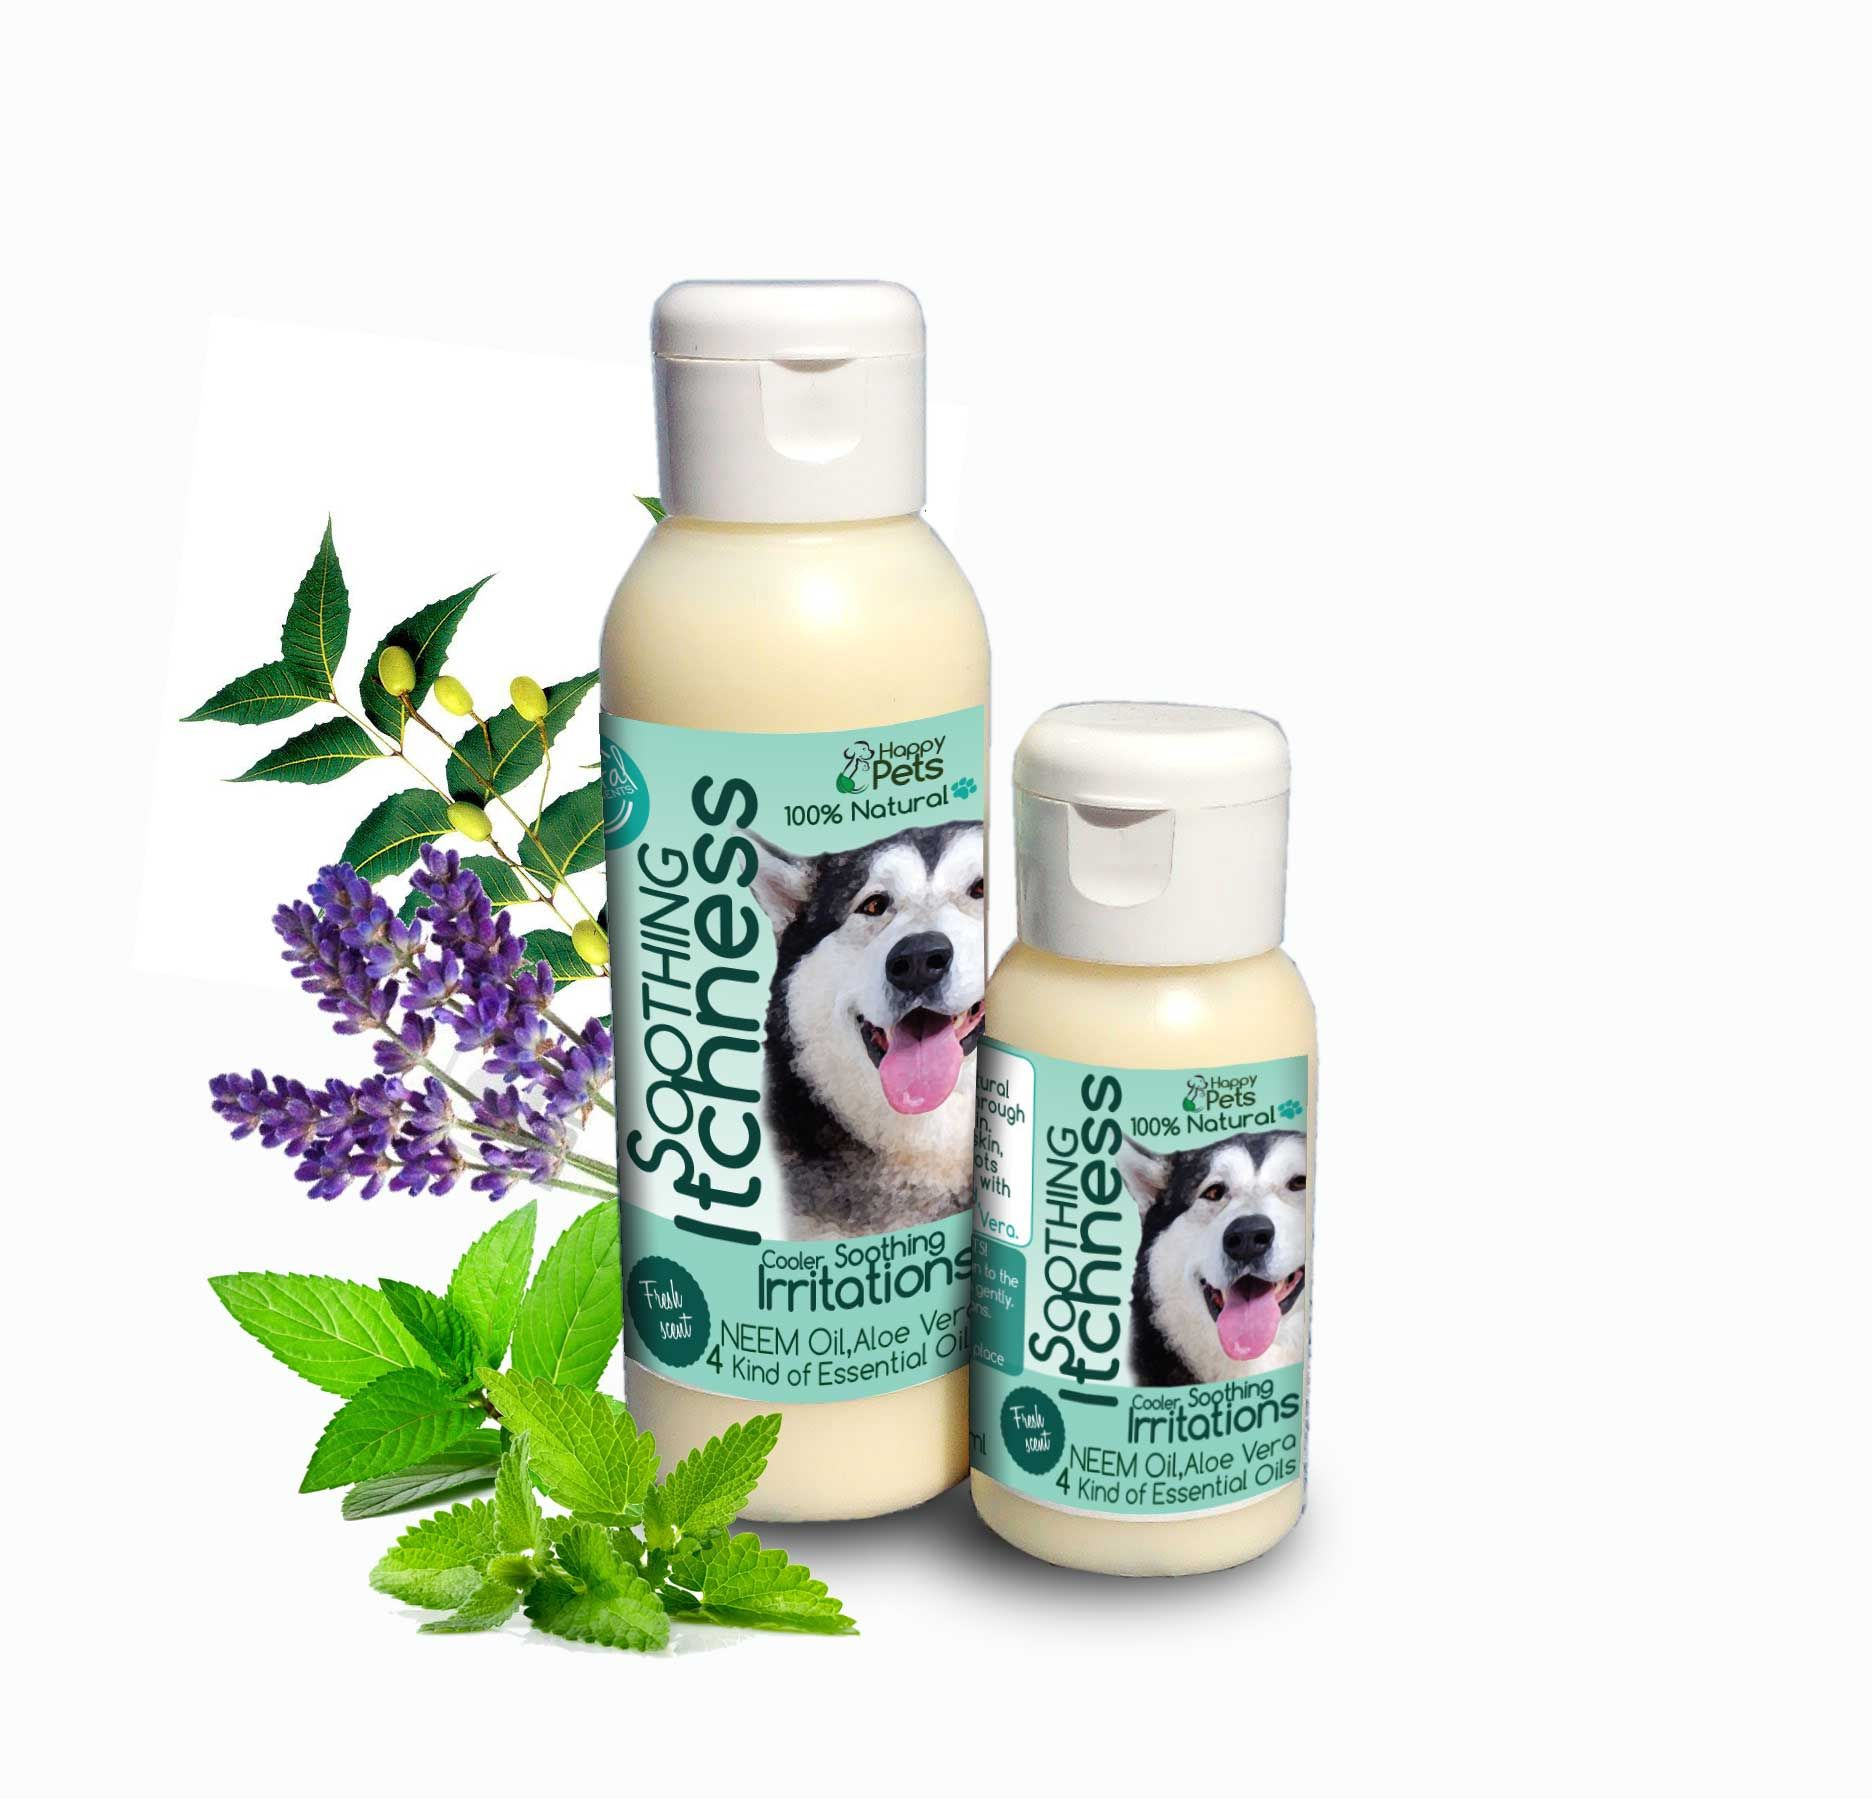 Itch Relief Body Spray Coconut oil for dogs, Coconut oil